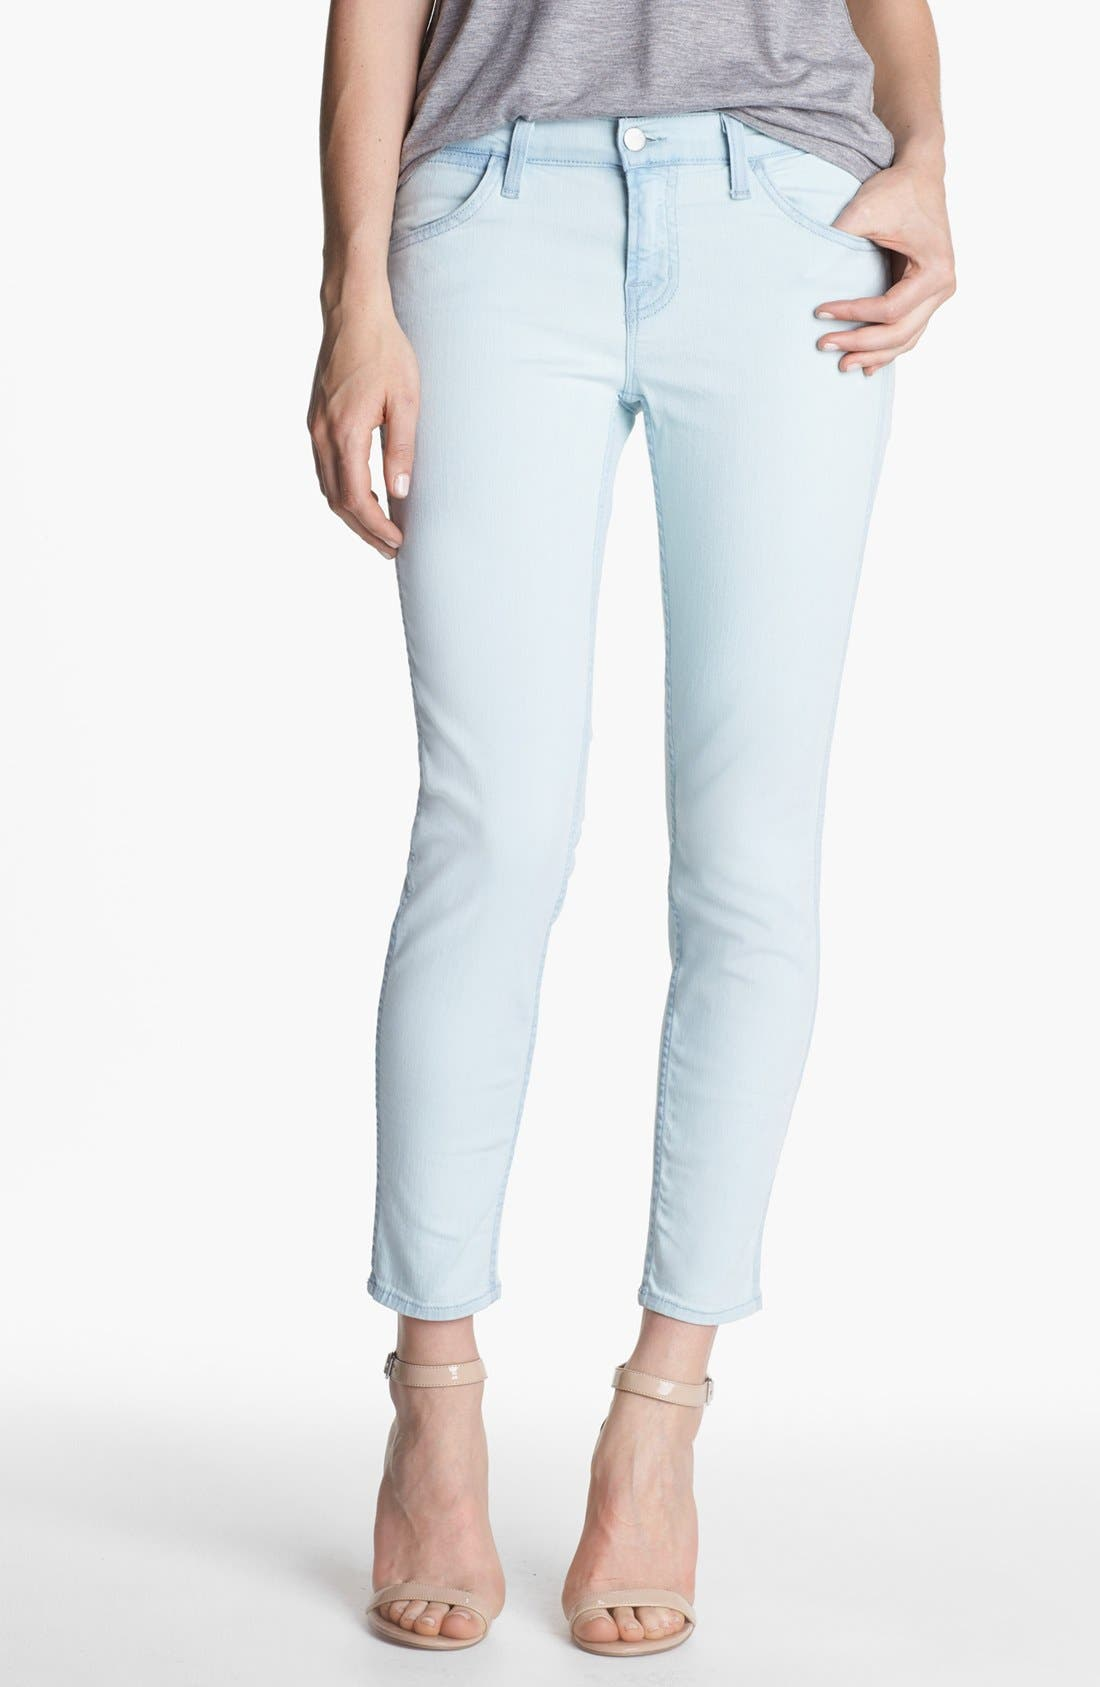 Alternate Image 1 Selected - J Brand 'Allegra' Ankle Skinny Jeans (Nirvana Sky)